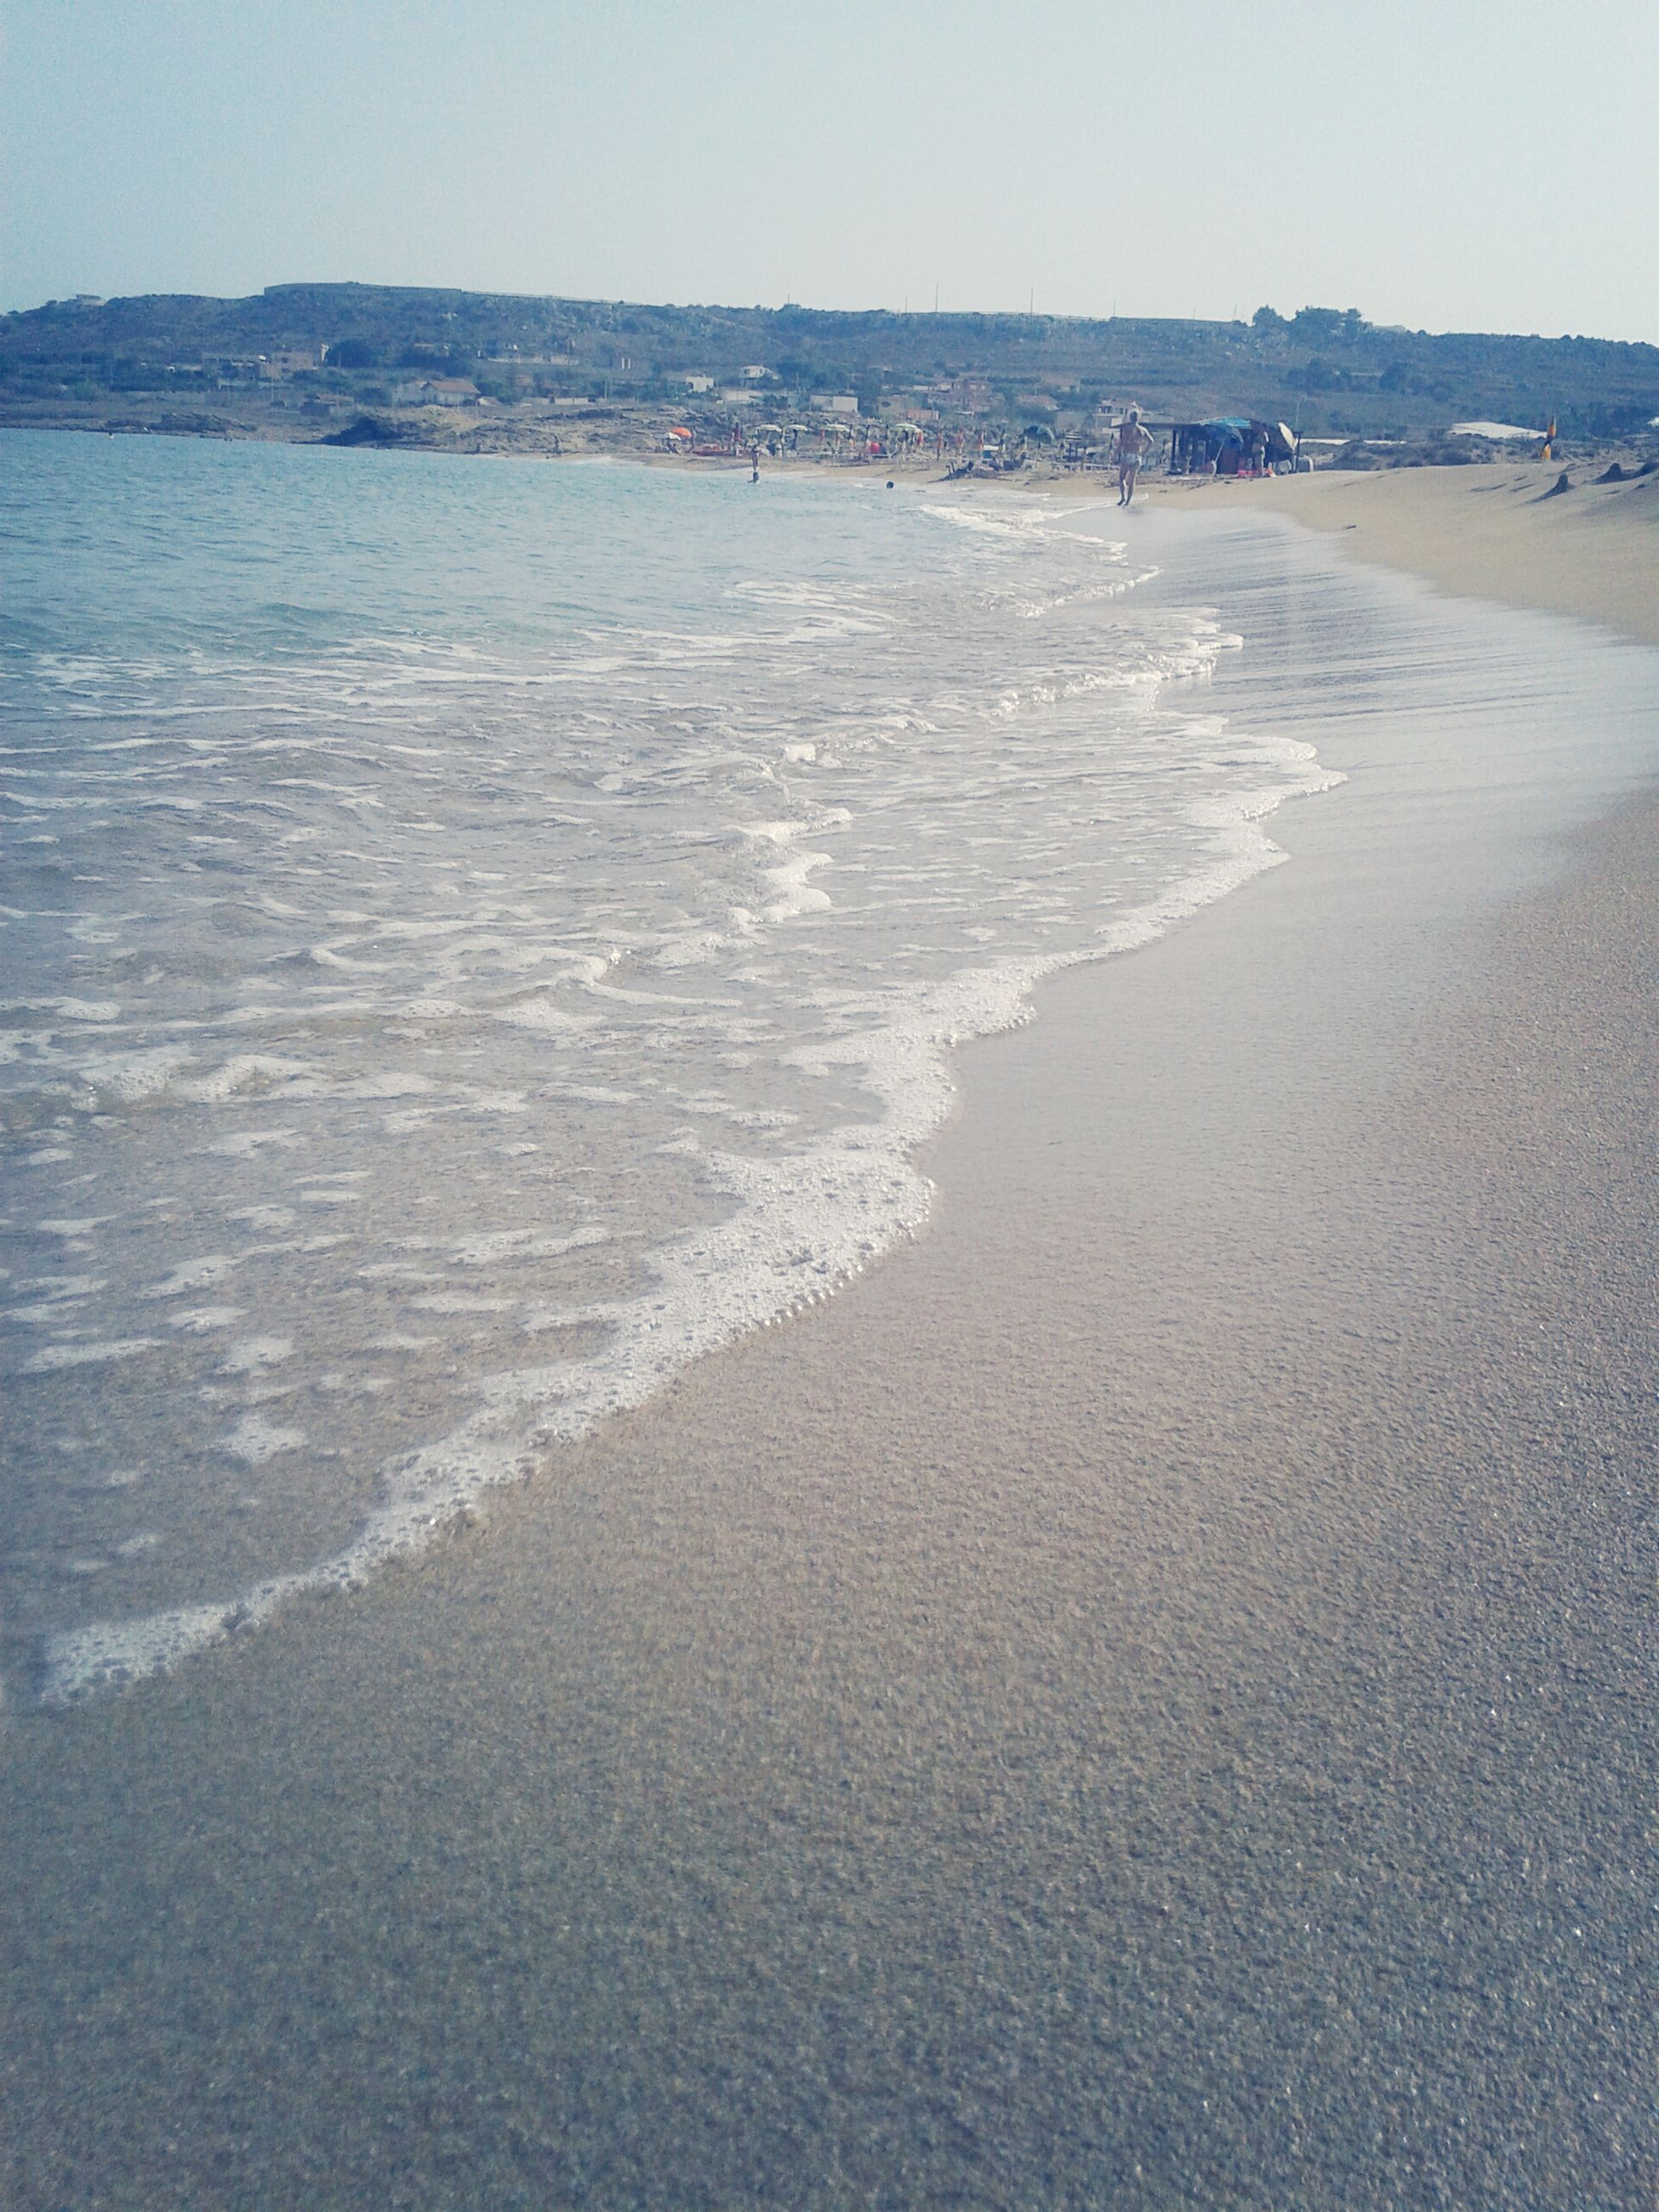 sea, beach, water, sand, shore, horizon over water, wave, scenics, tranquility, surf, tranquil scene, beauty in nature, nature, coastline, incidental people, sky, clear sky, day, idyllic, vacations